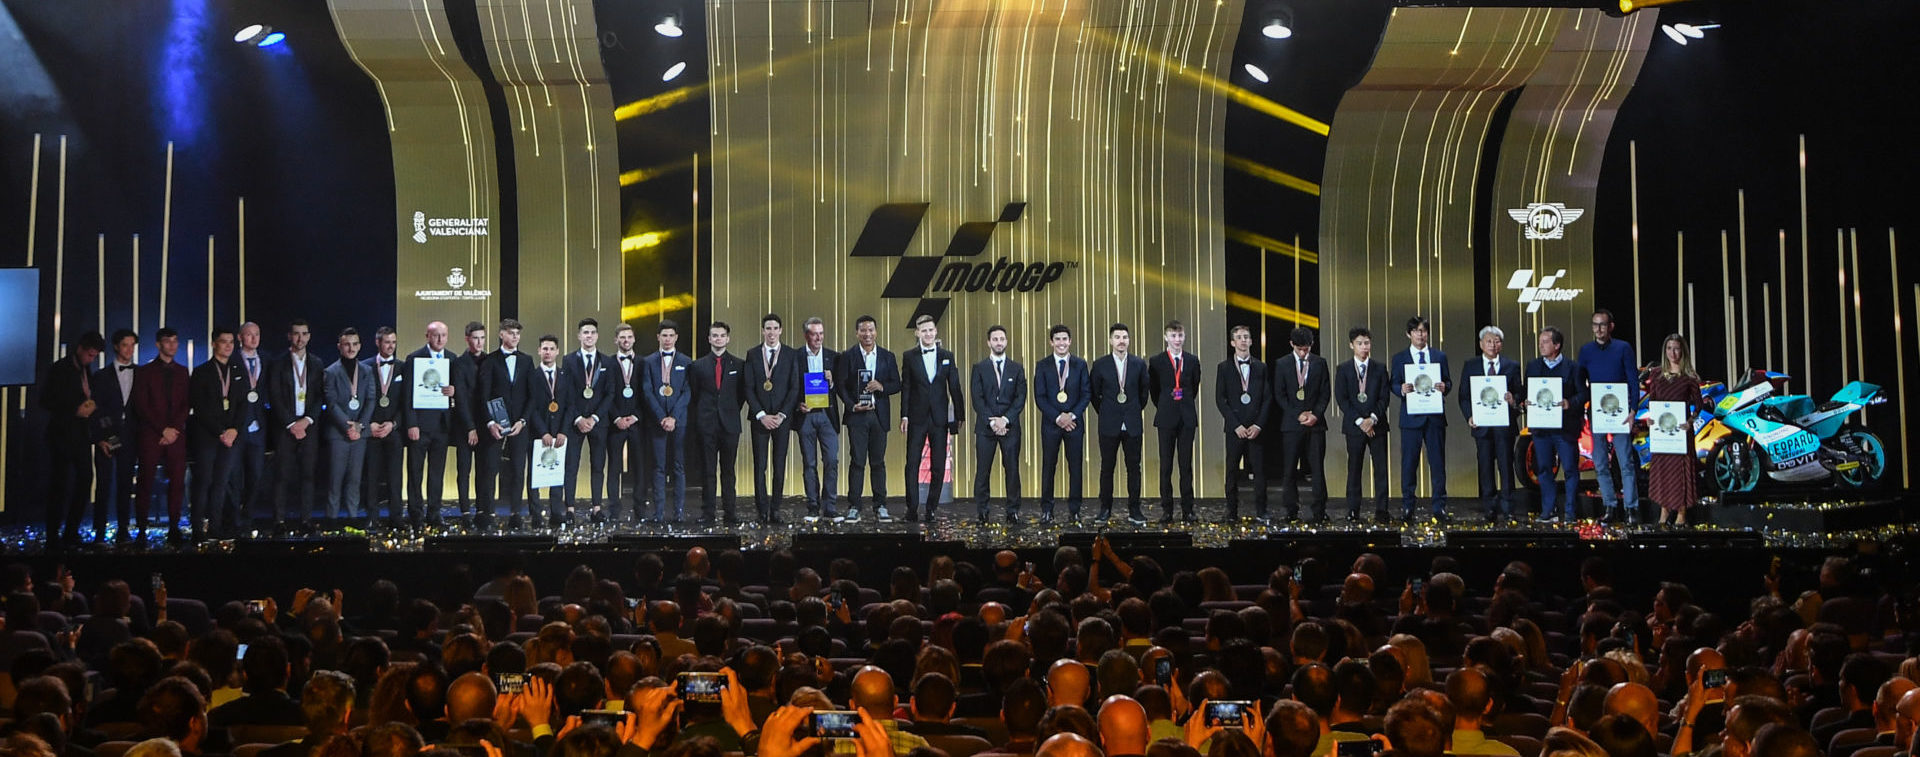 Honorees on stage at the 2019 FIM MotoGP Awards Ceremony in Spain. Photo courtesy of Dorna/www.motogp.com.